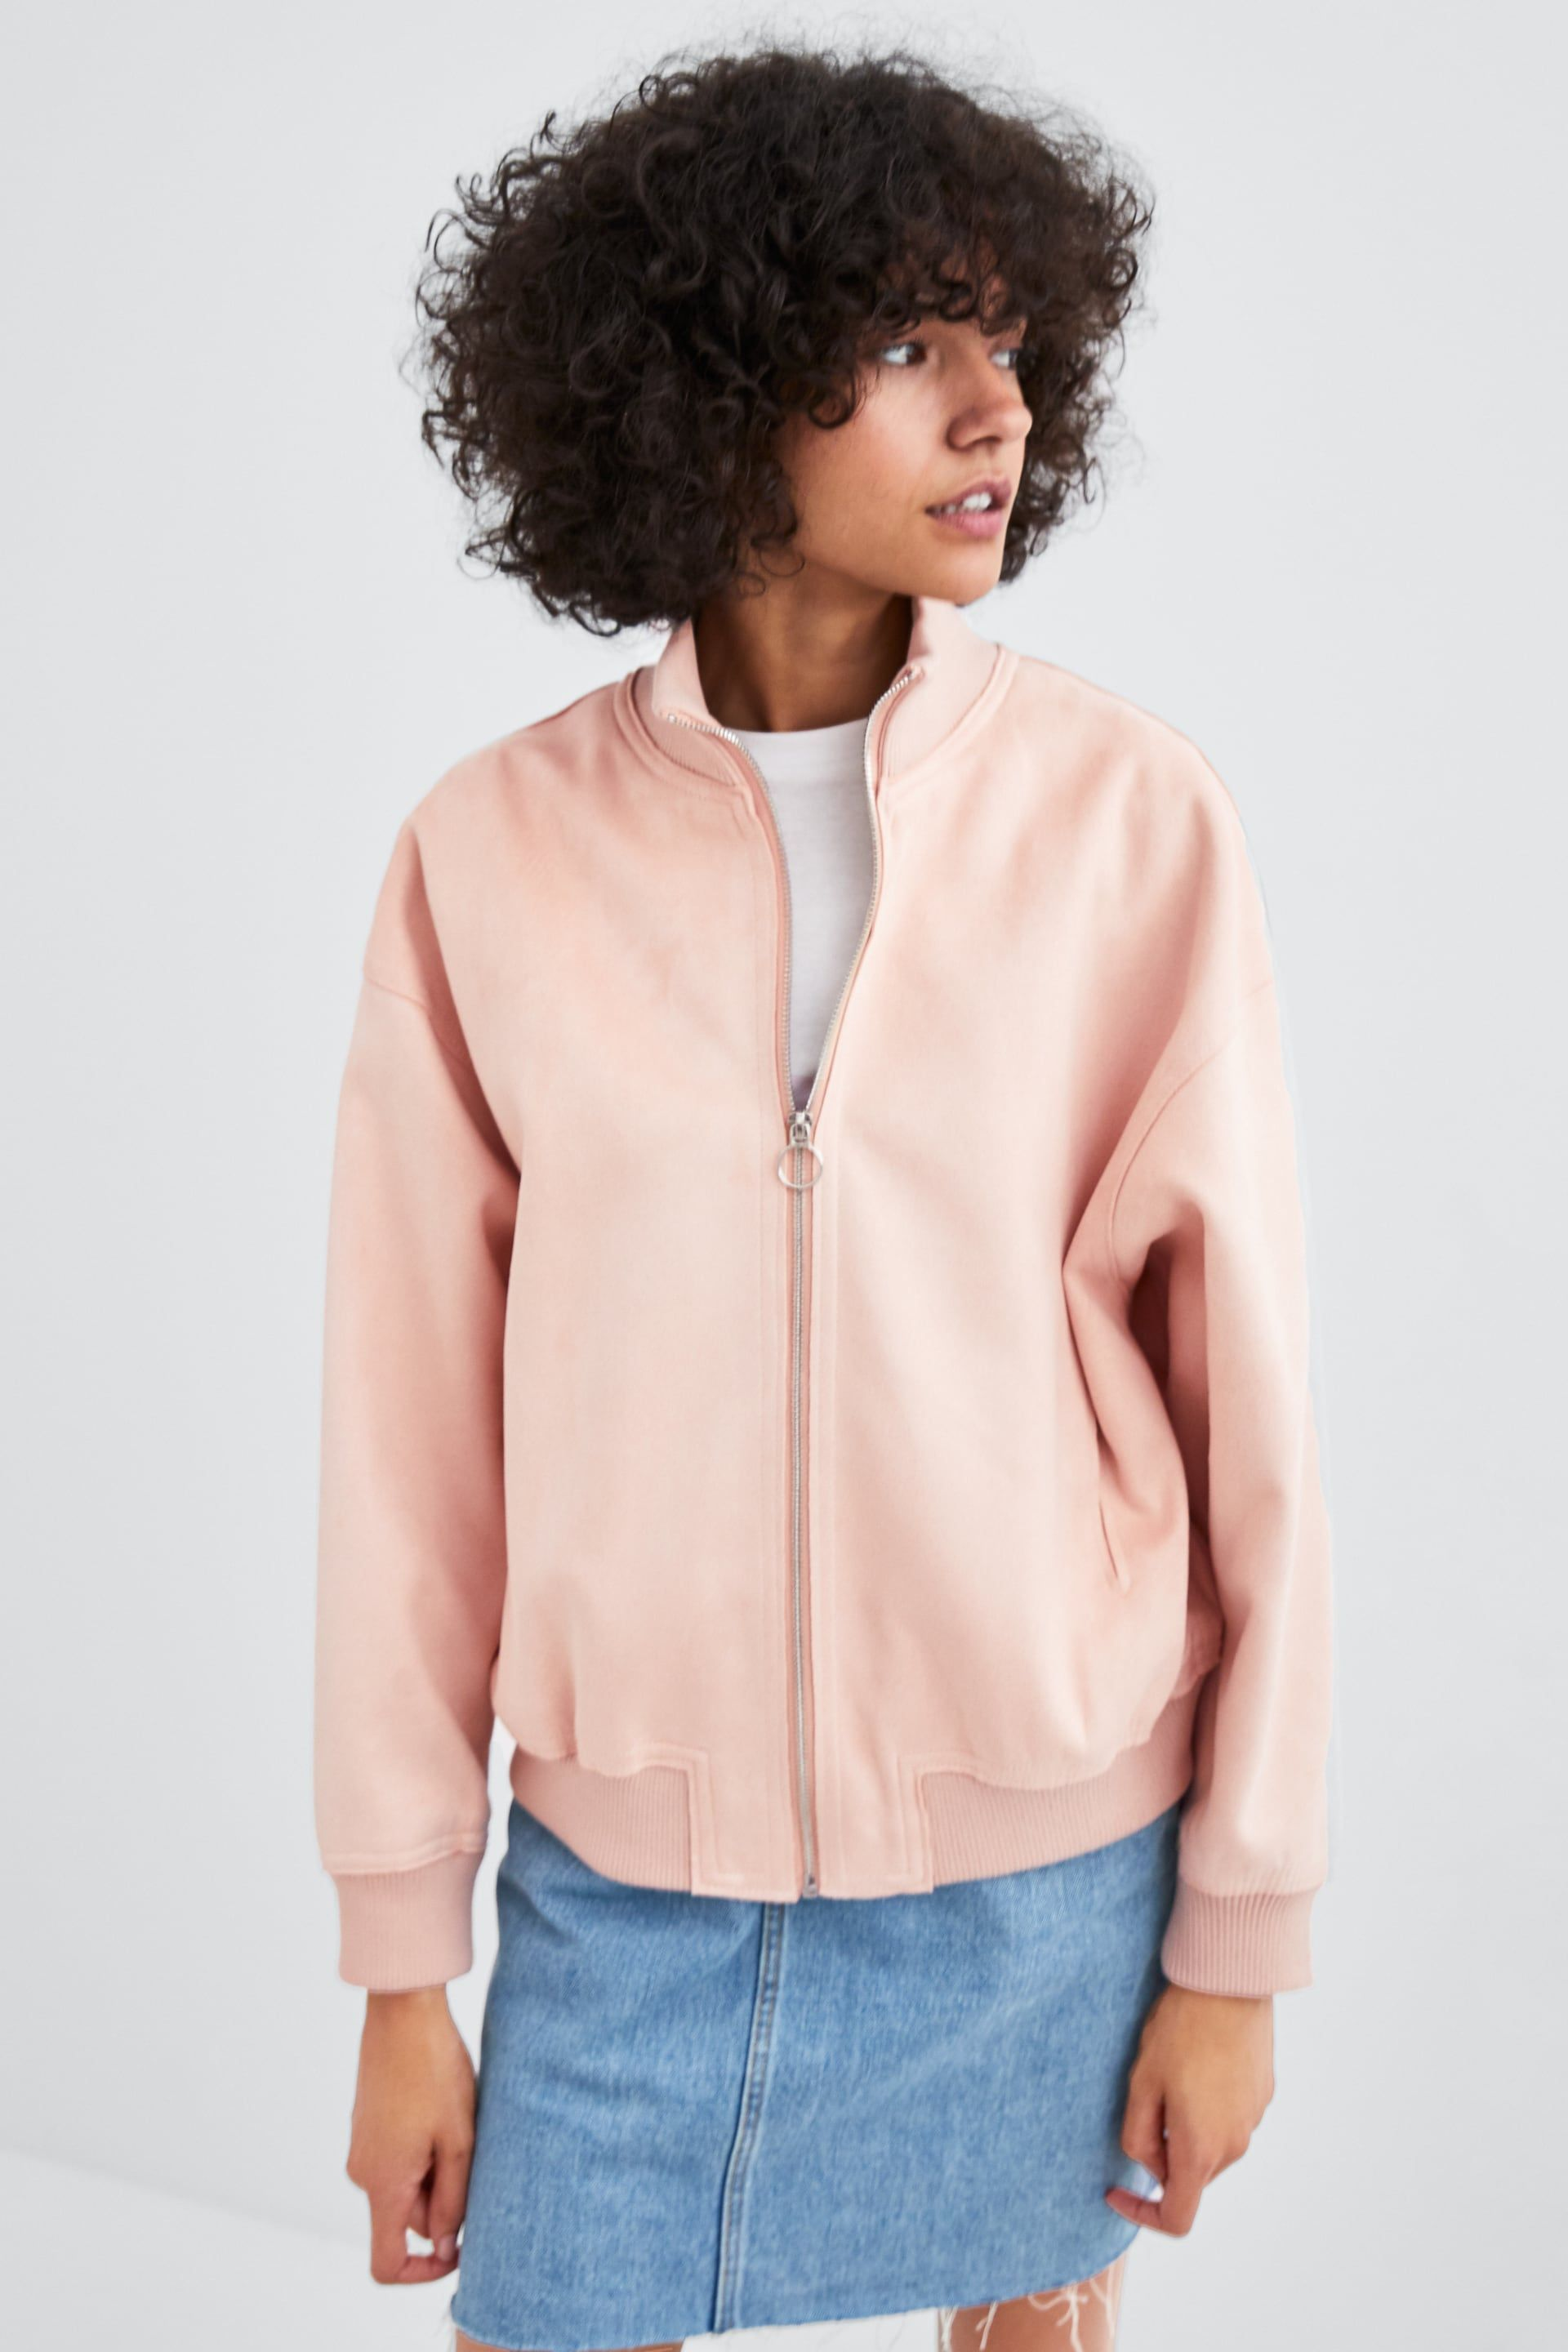 Image 2 Of Faux Suede Bomber Jacket From Zara Suede Bomber Jacket Suede Bomber Jackets [ 2880 x 1920 Pixel ]